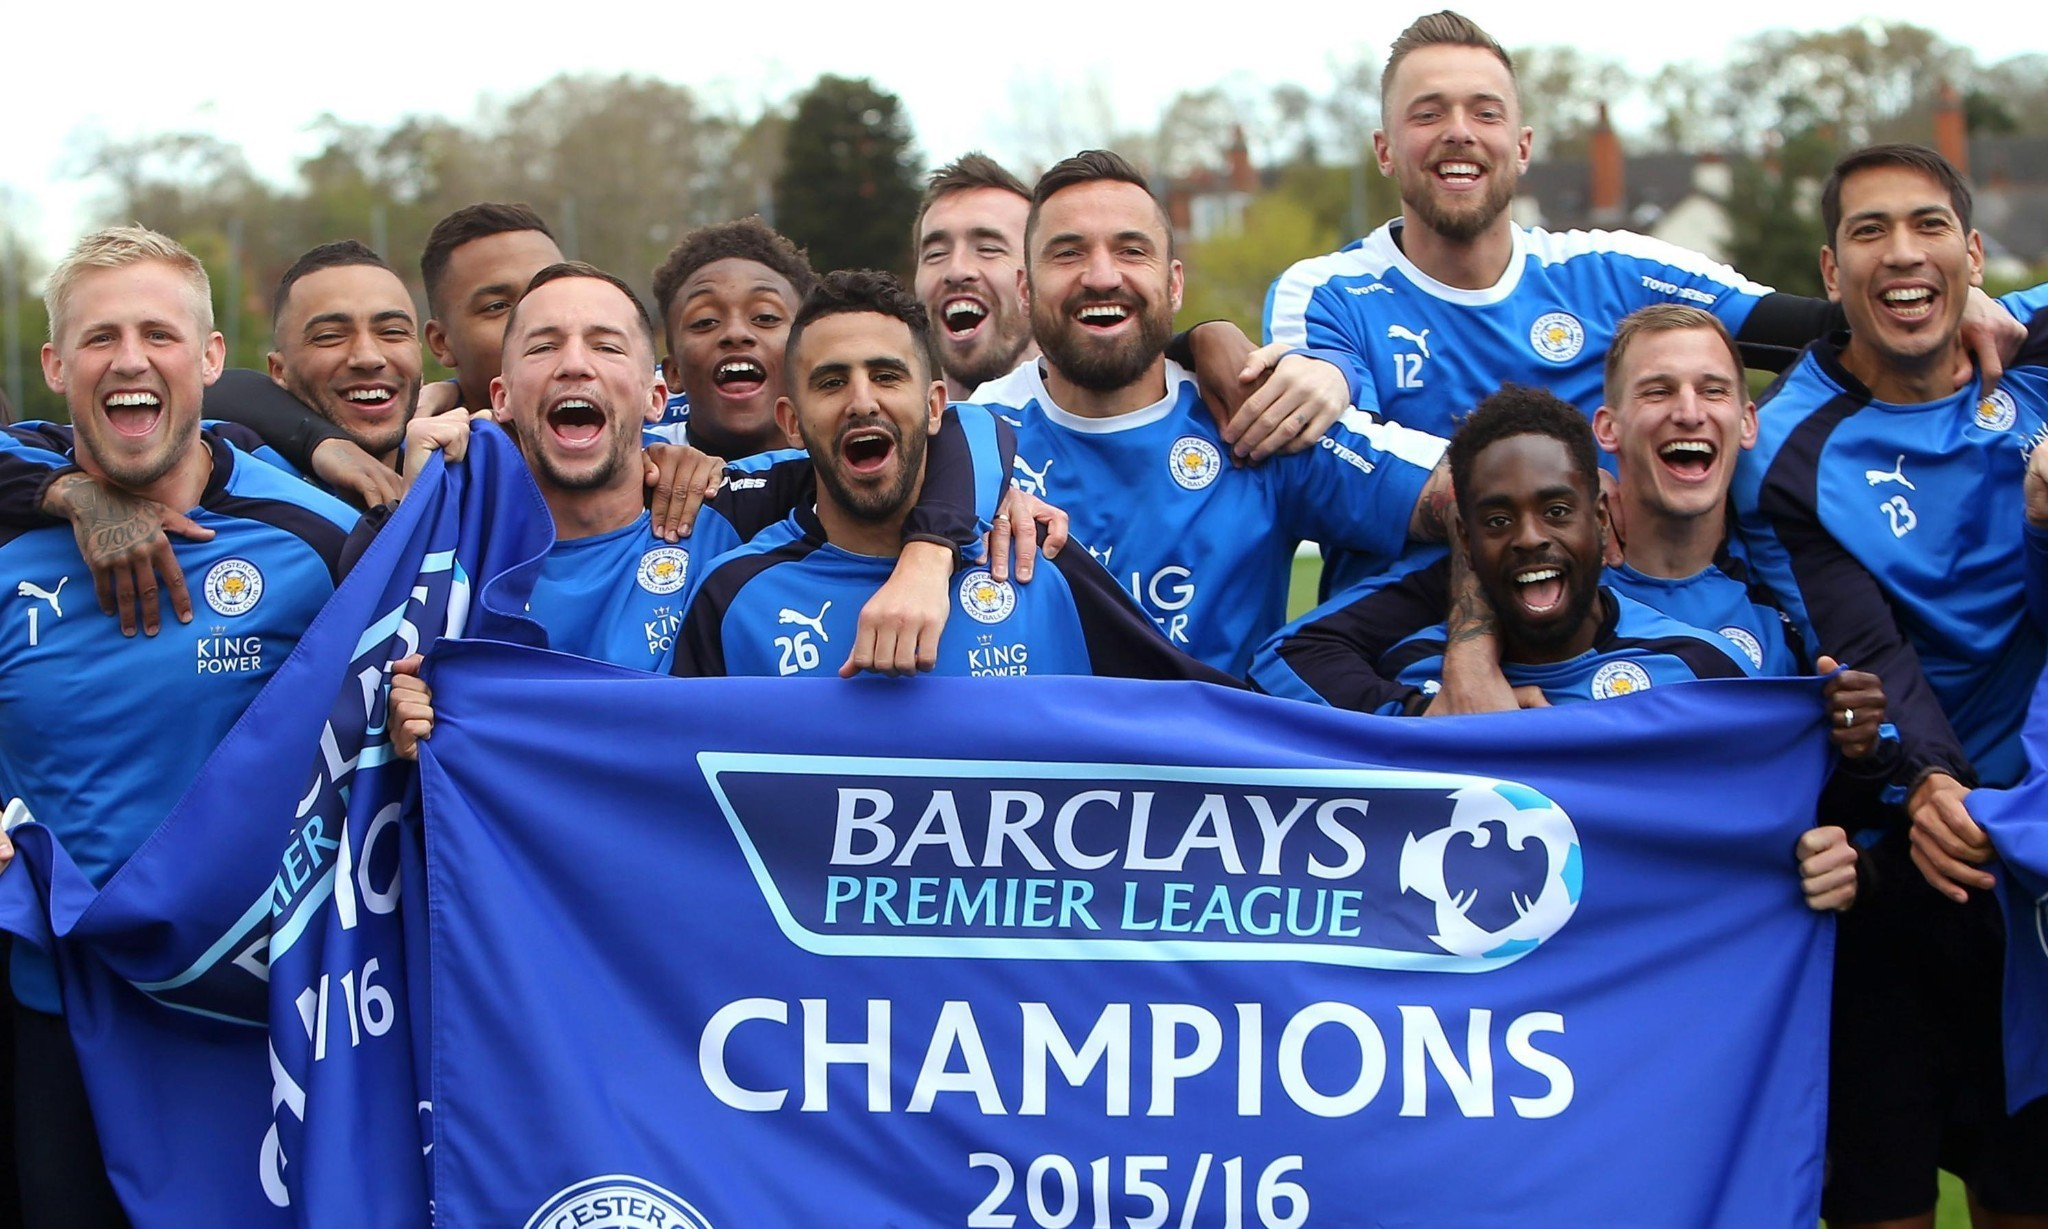 Leicester's cast of heroes face new horizons and new challenges